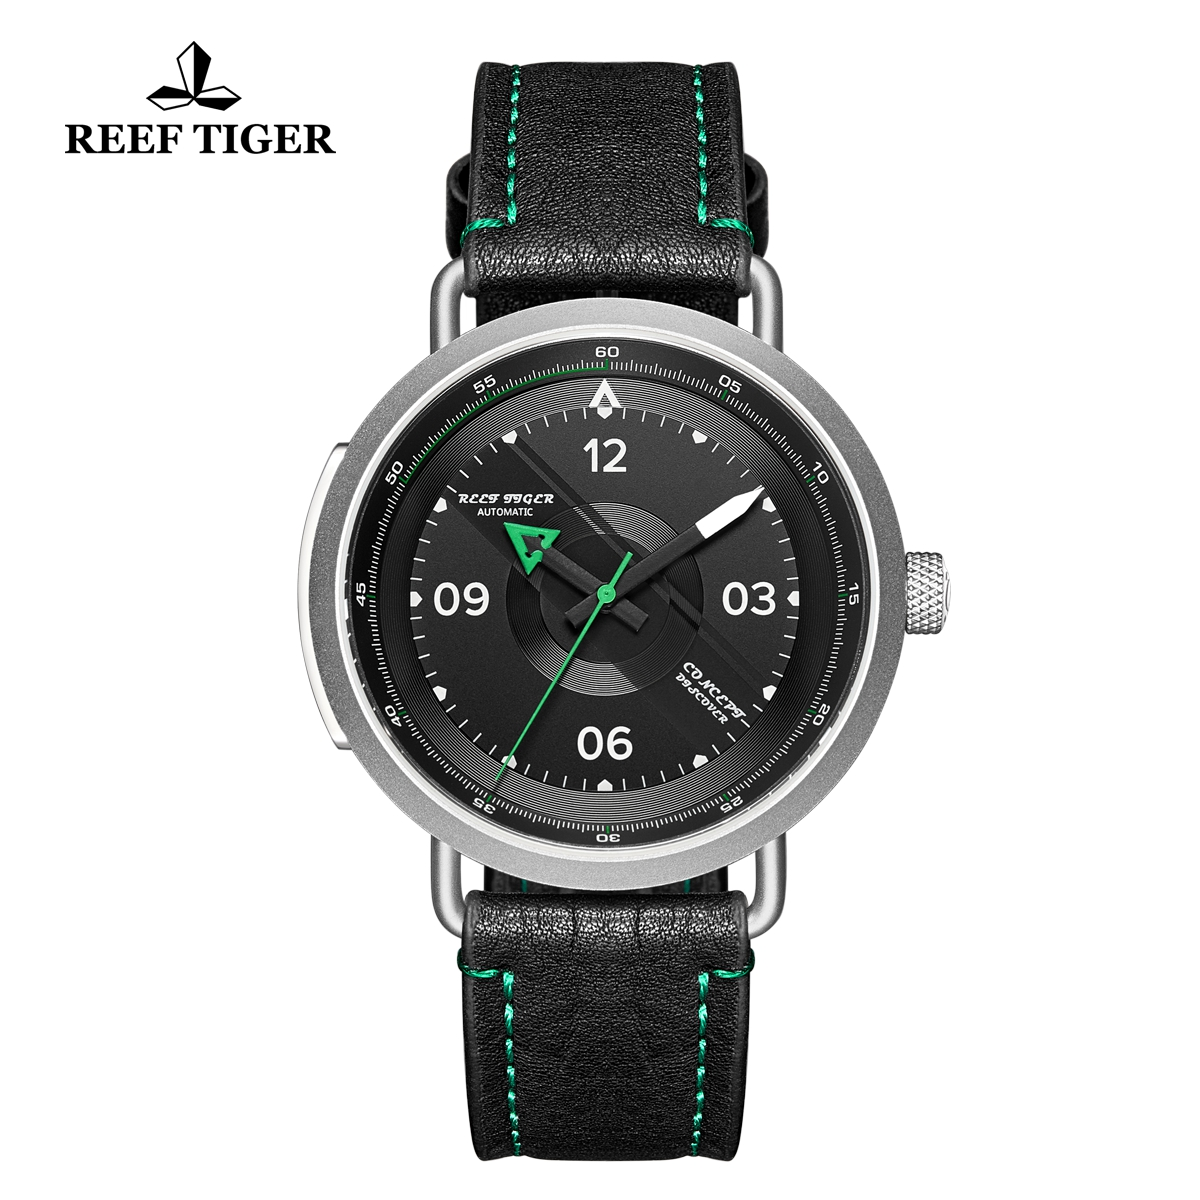 Reef Tiger Limited Edition Discover Mens Steel Black Dial Leather Strap Green Pointer Automatic Watch RGA9055-YBG